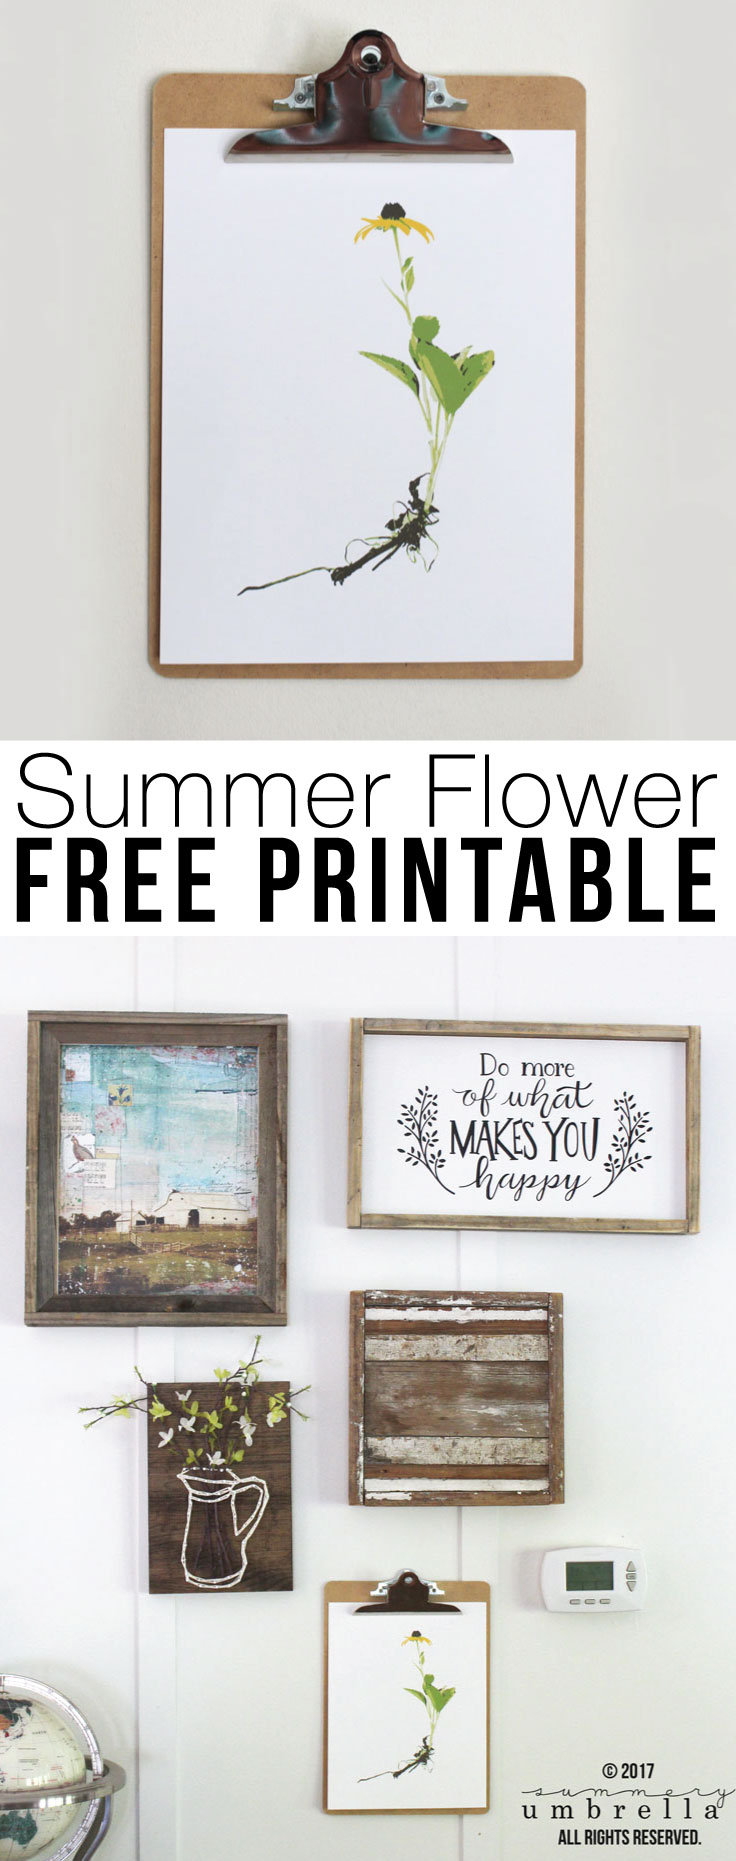 #FFF: Spruce up your home with this gorgeous Summer Flower FREE Printable Wall Decor that is now available on the blog today!